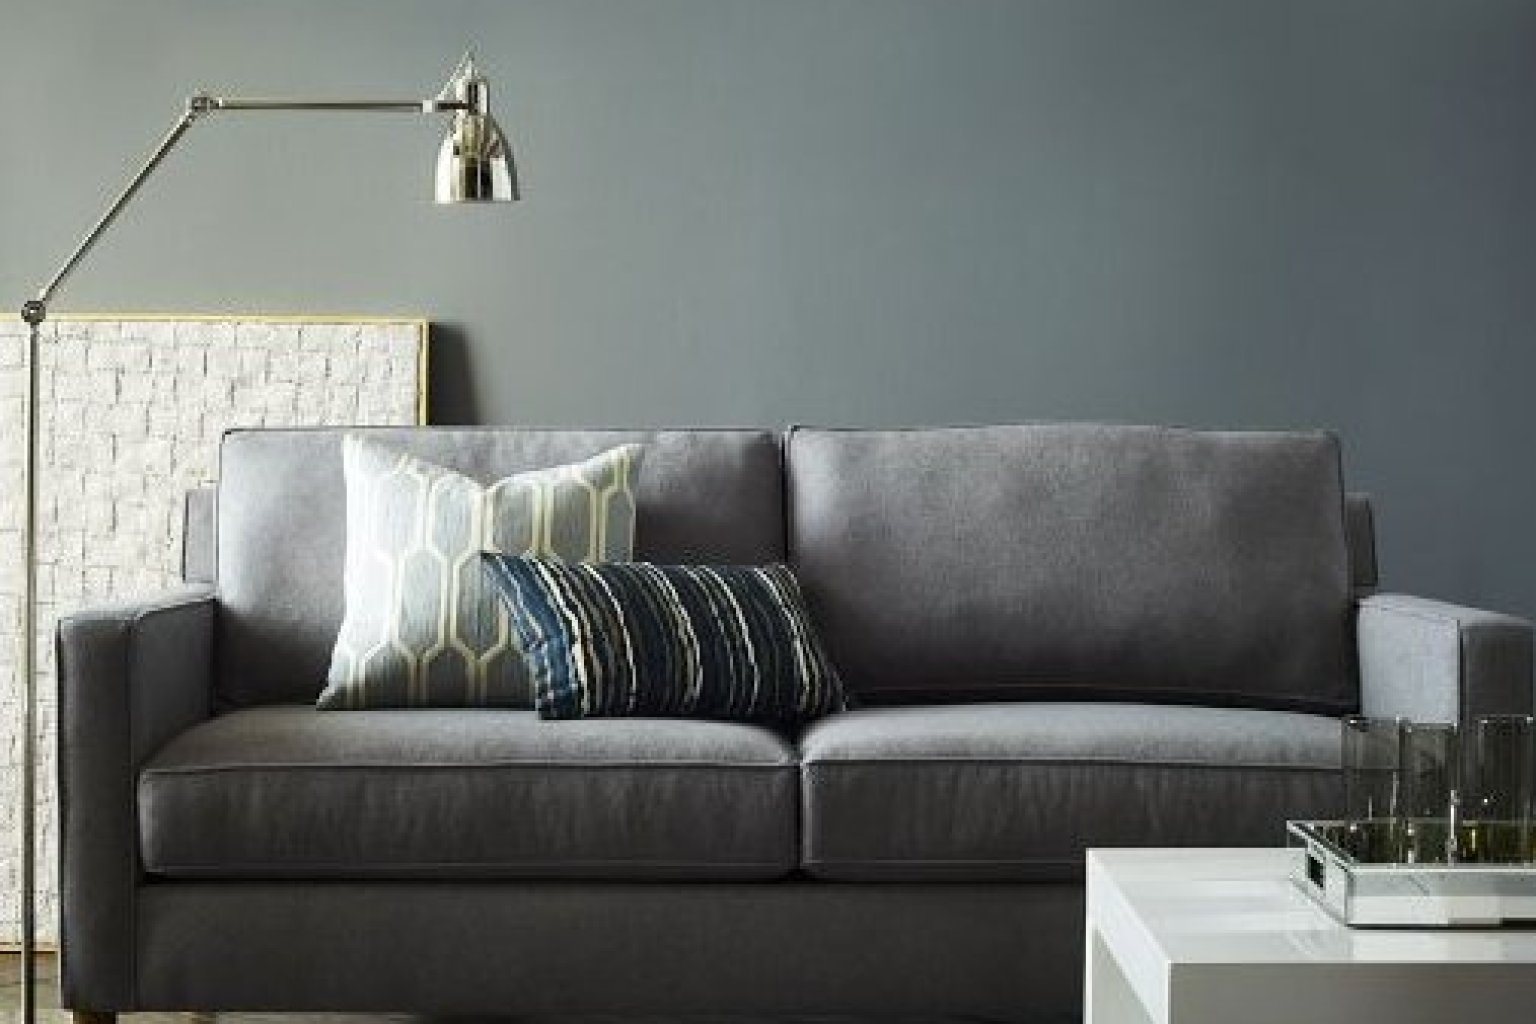 Design Small Space Sofas 6 couches for small apartments that will actually fit in your space photos huffpost